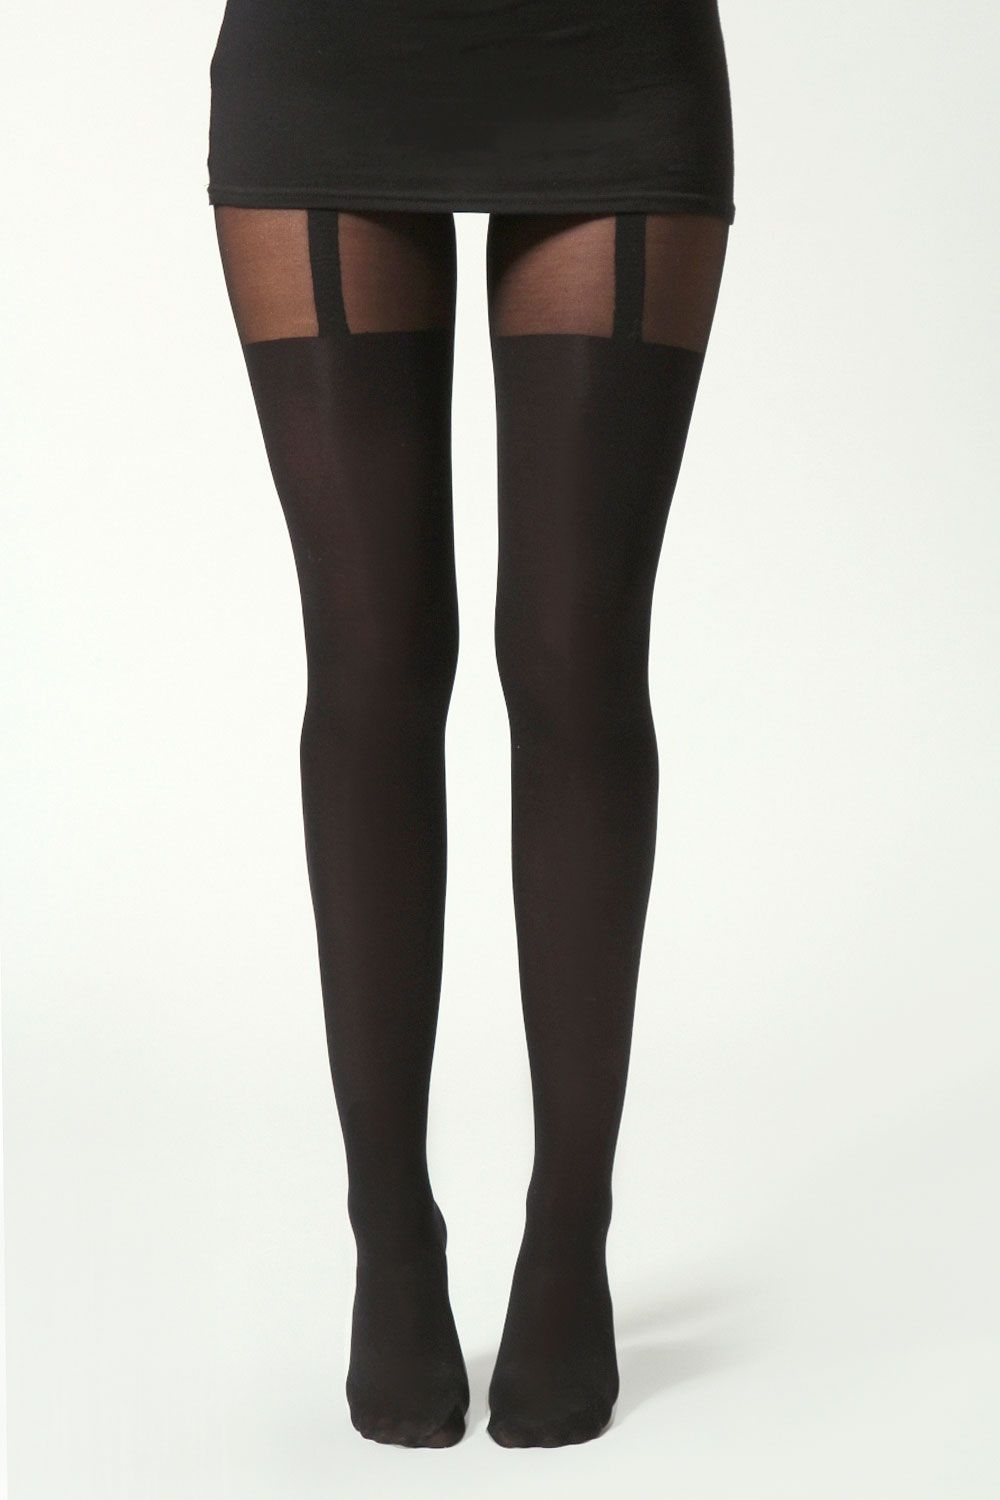 ab88c69763f Hannah Mock Suspender Tights .. I purchased mine from Donatellas.com ...